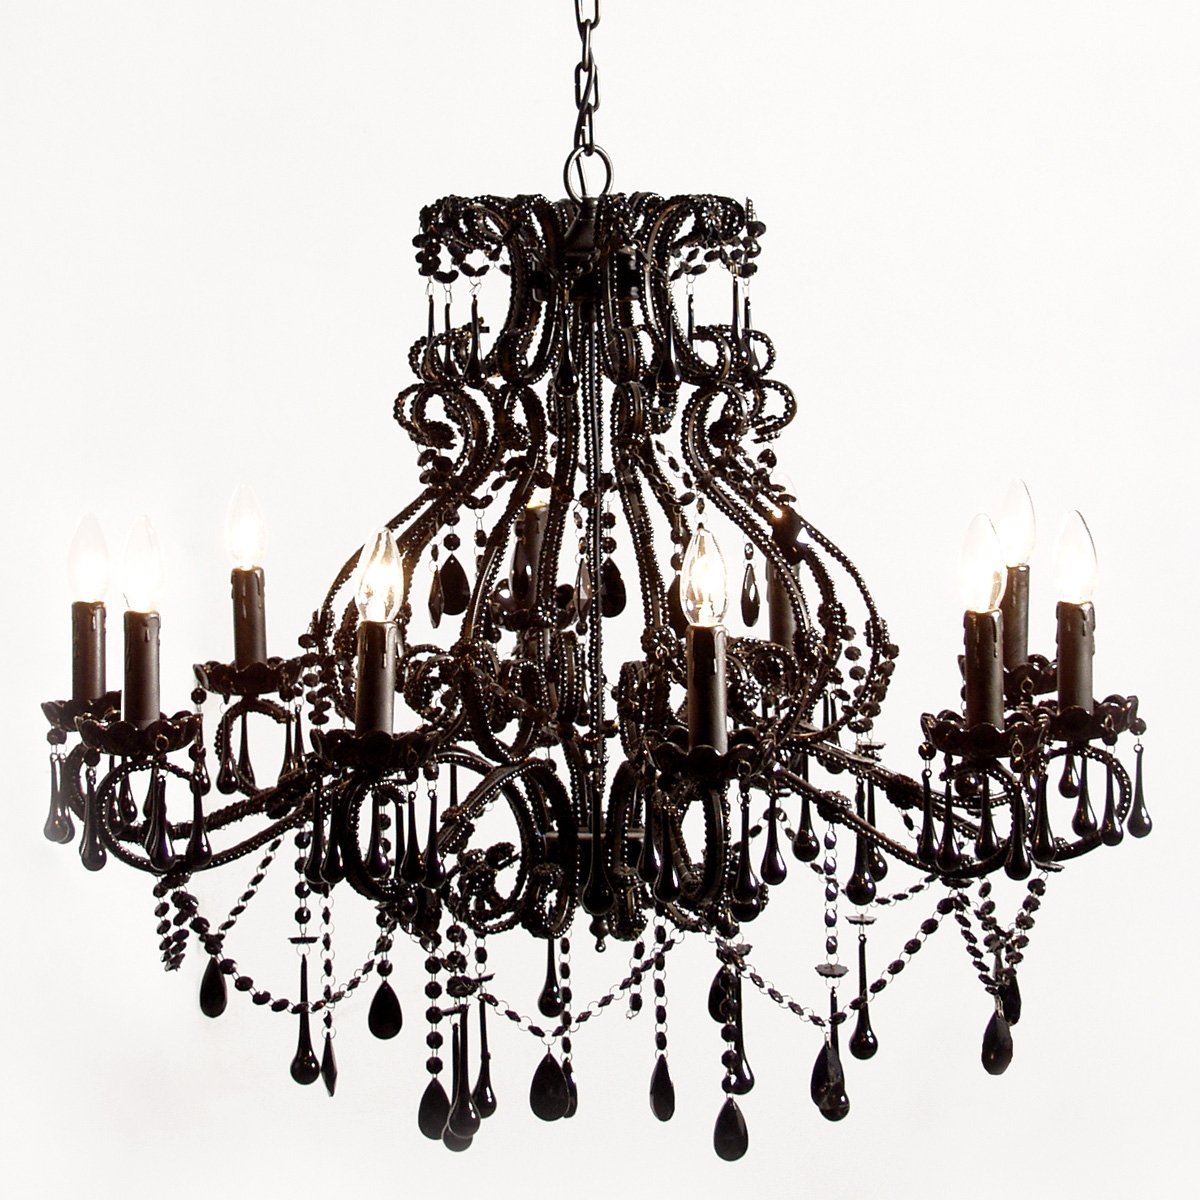 Big Black Chandelier Furniture Ideas For Large Black Chandelier (#2 of 12)